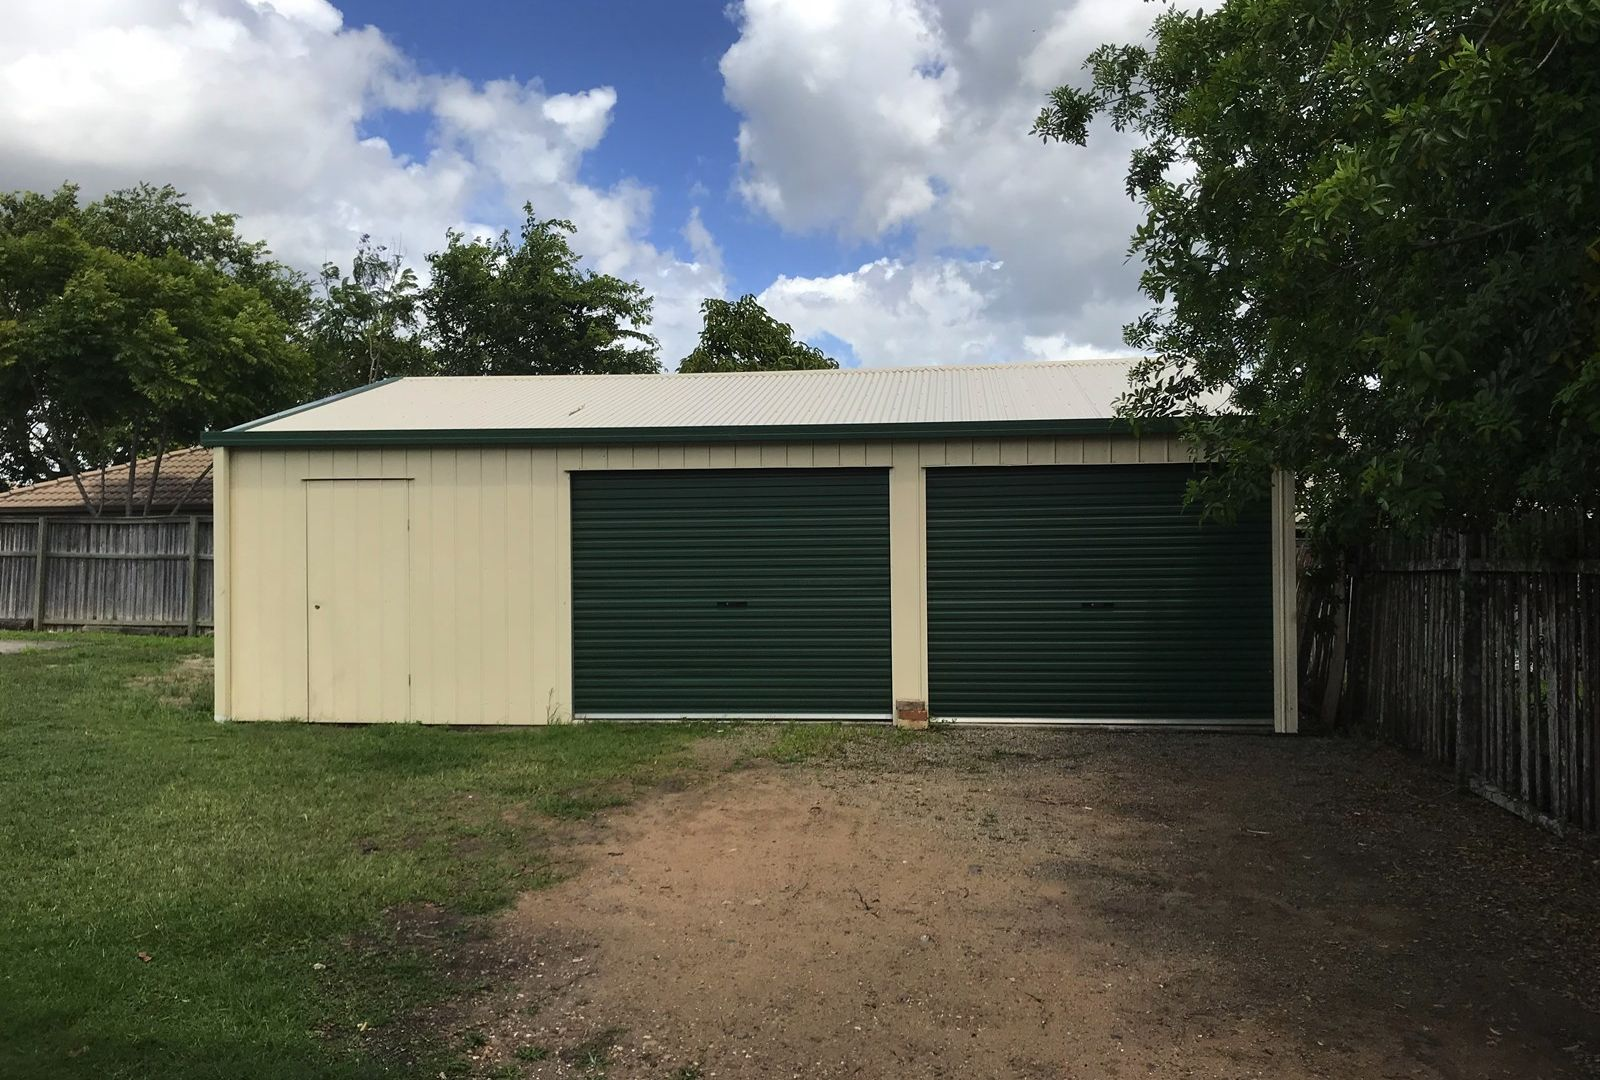 181 Raceview St, Raceview QLD 4305, Image 1